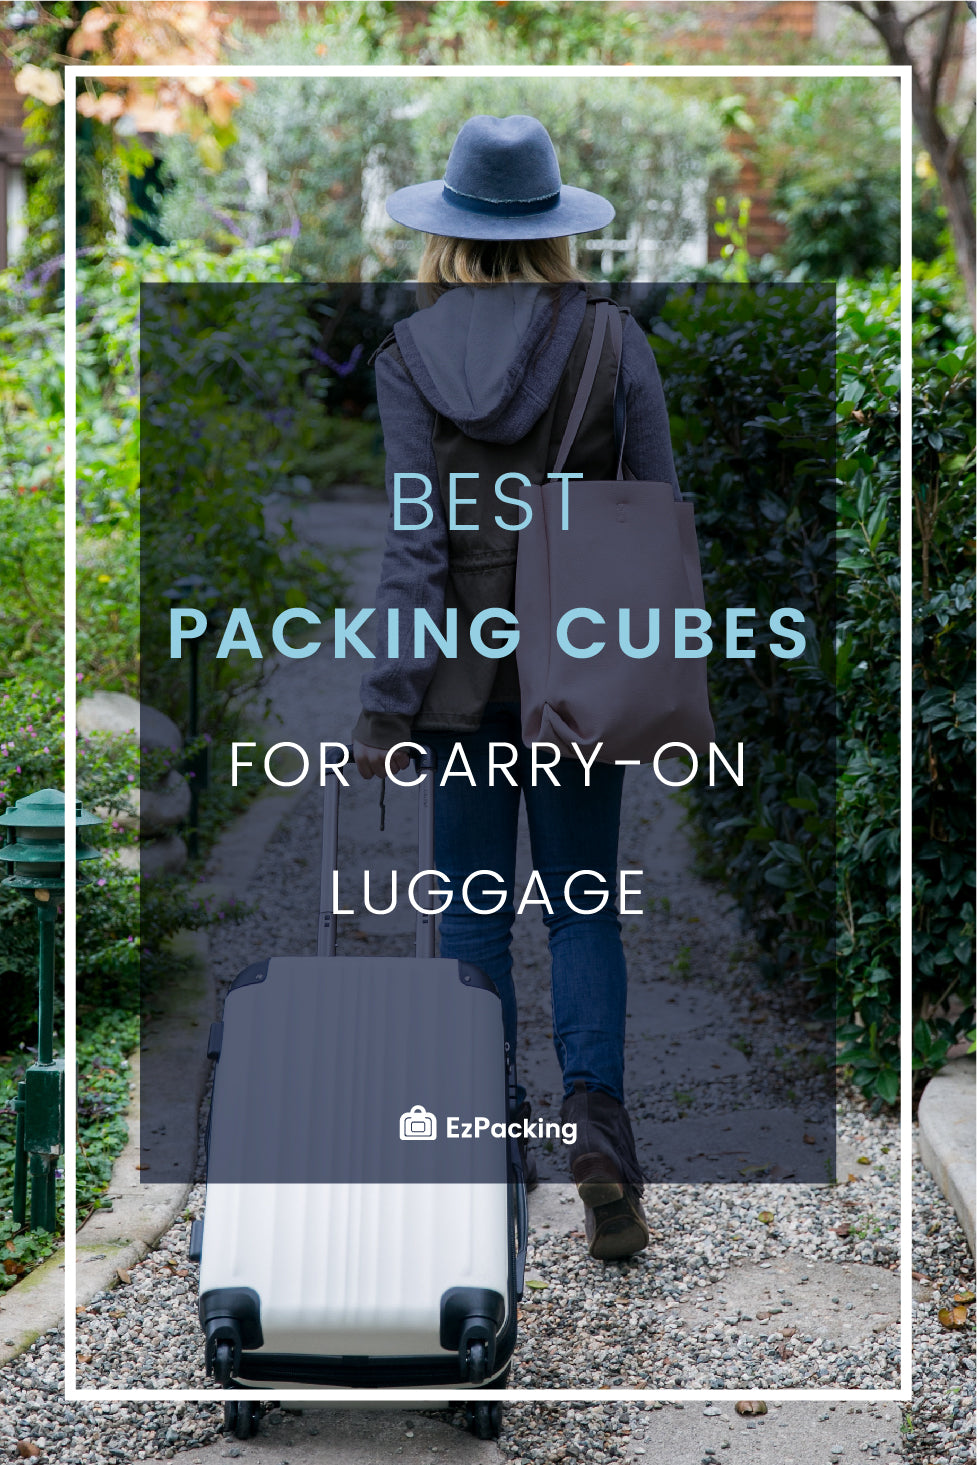 Best packing cubes for carry-on luggage